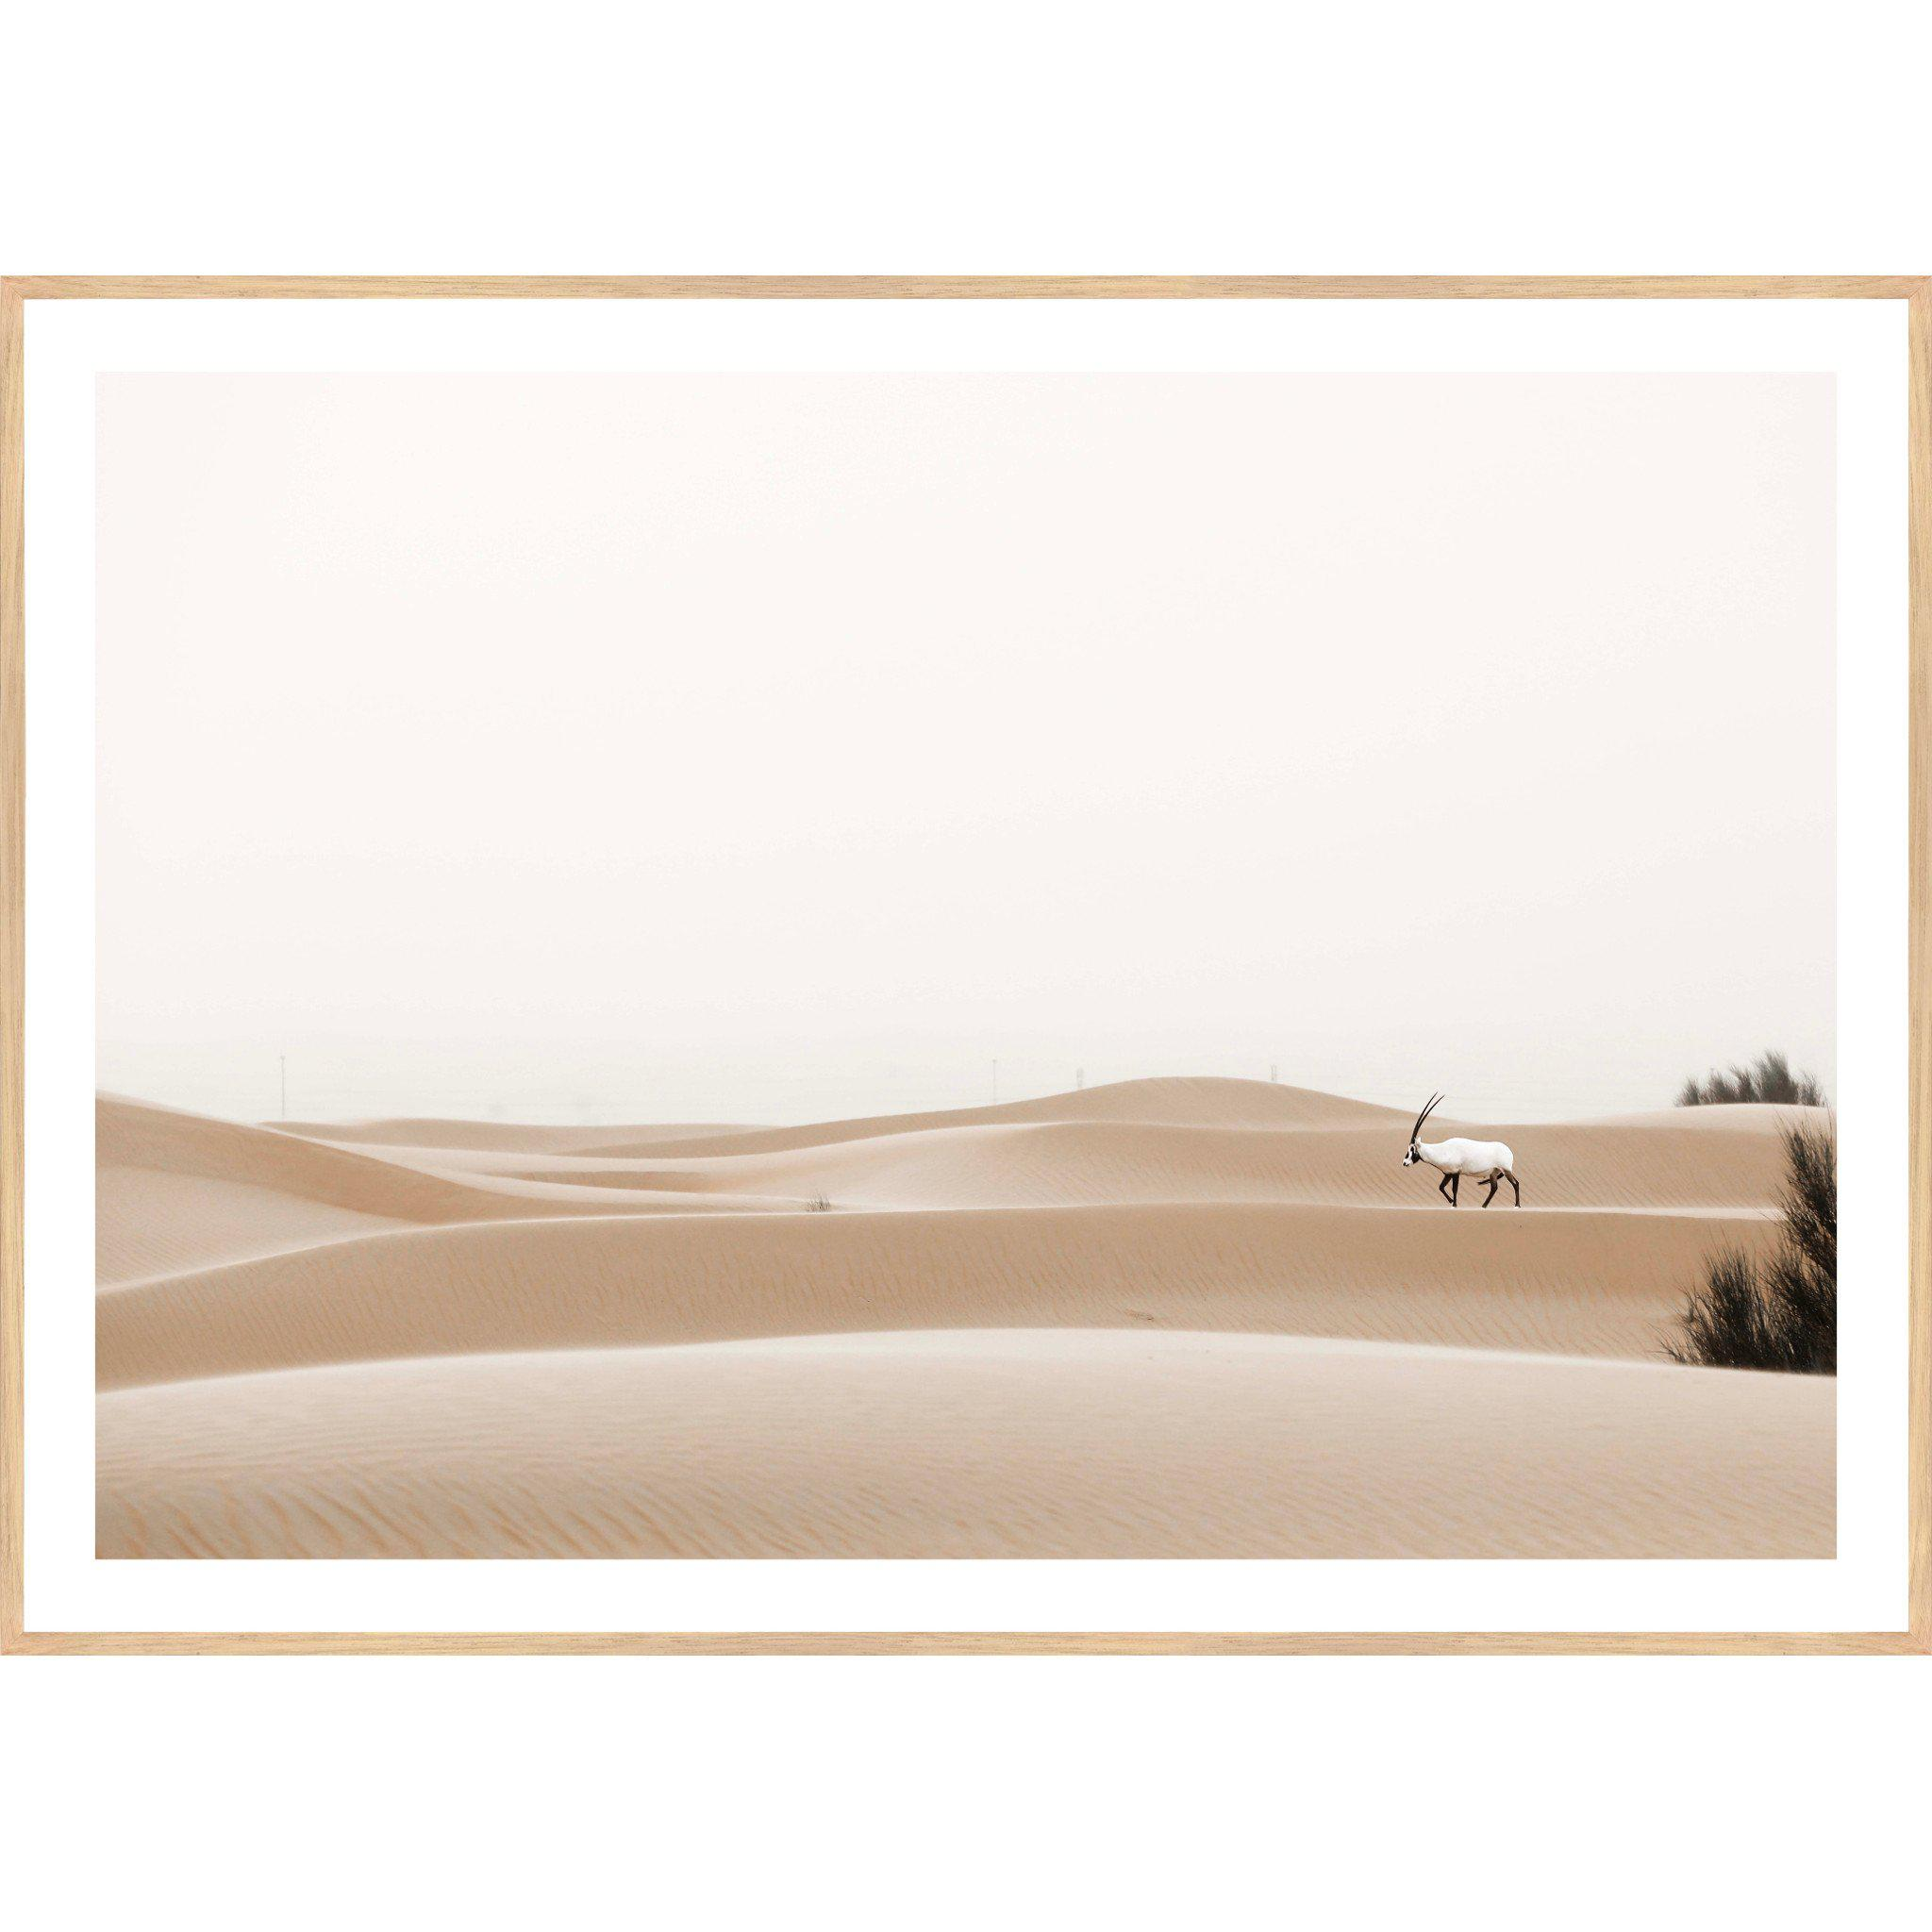 Mirage - Wall Art Print, Landscape